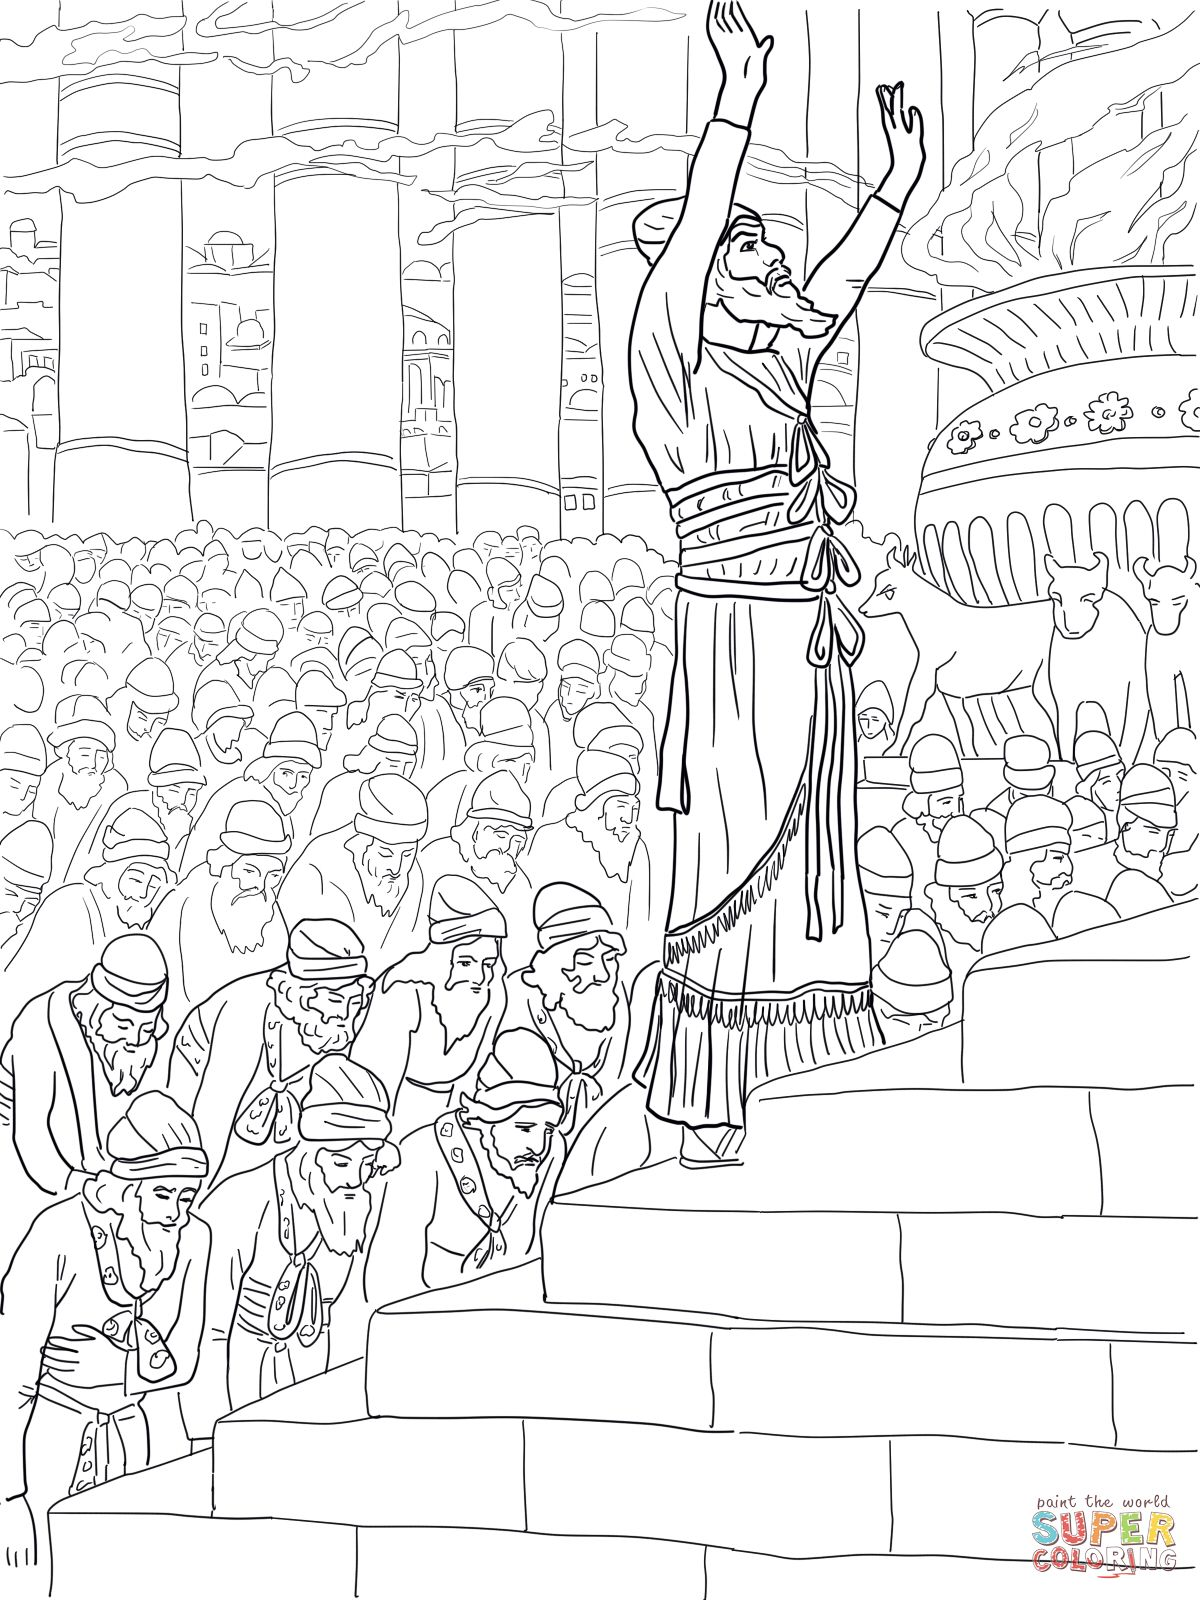 Free coloring pages king josiah - Solomon Prayer In The Temple Coloring Page Supercoloring Com